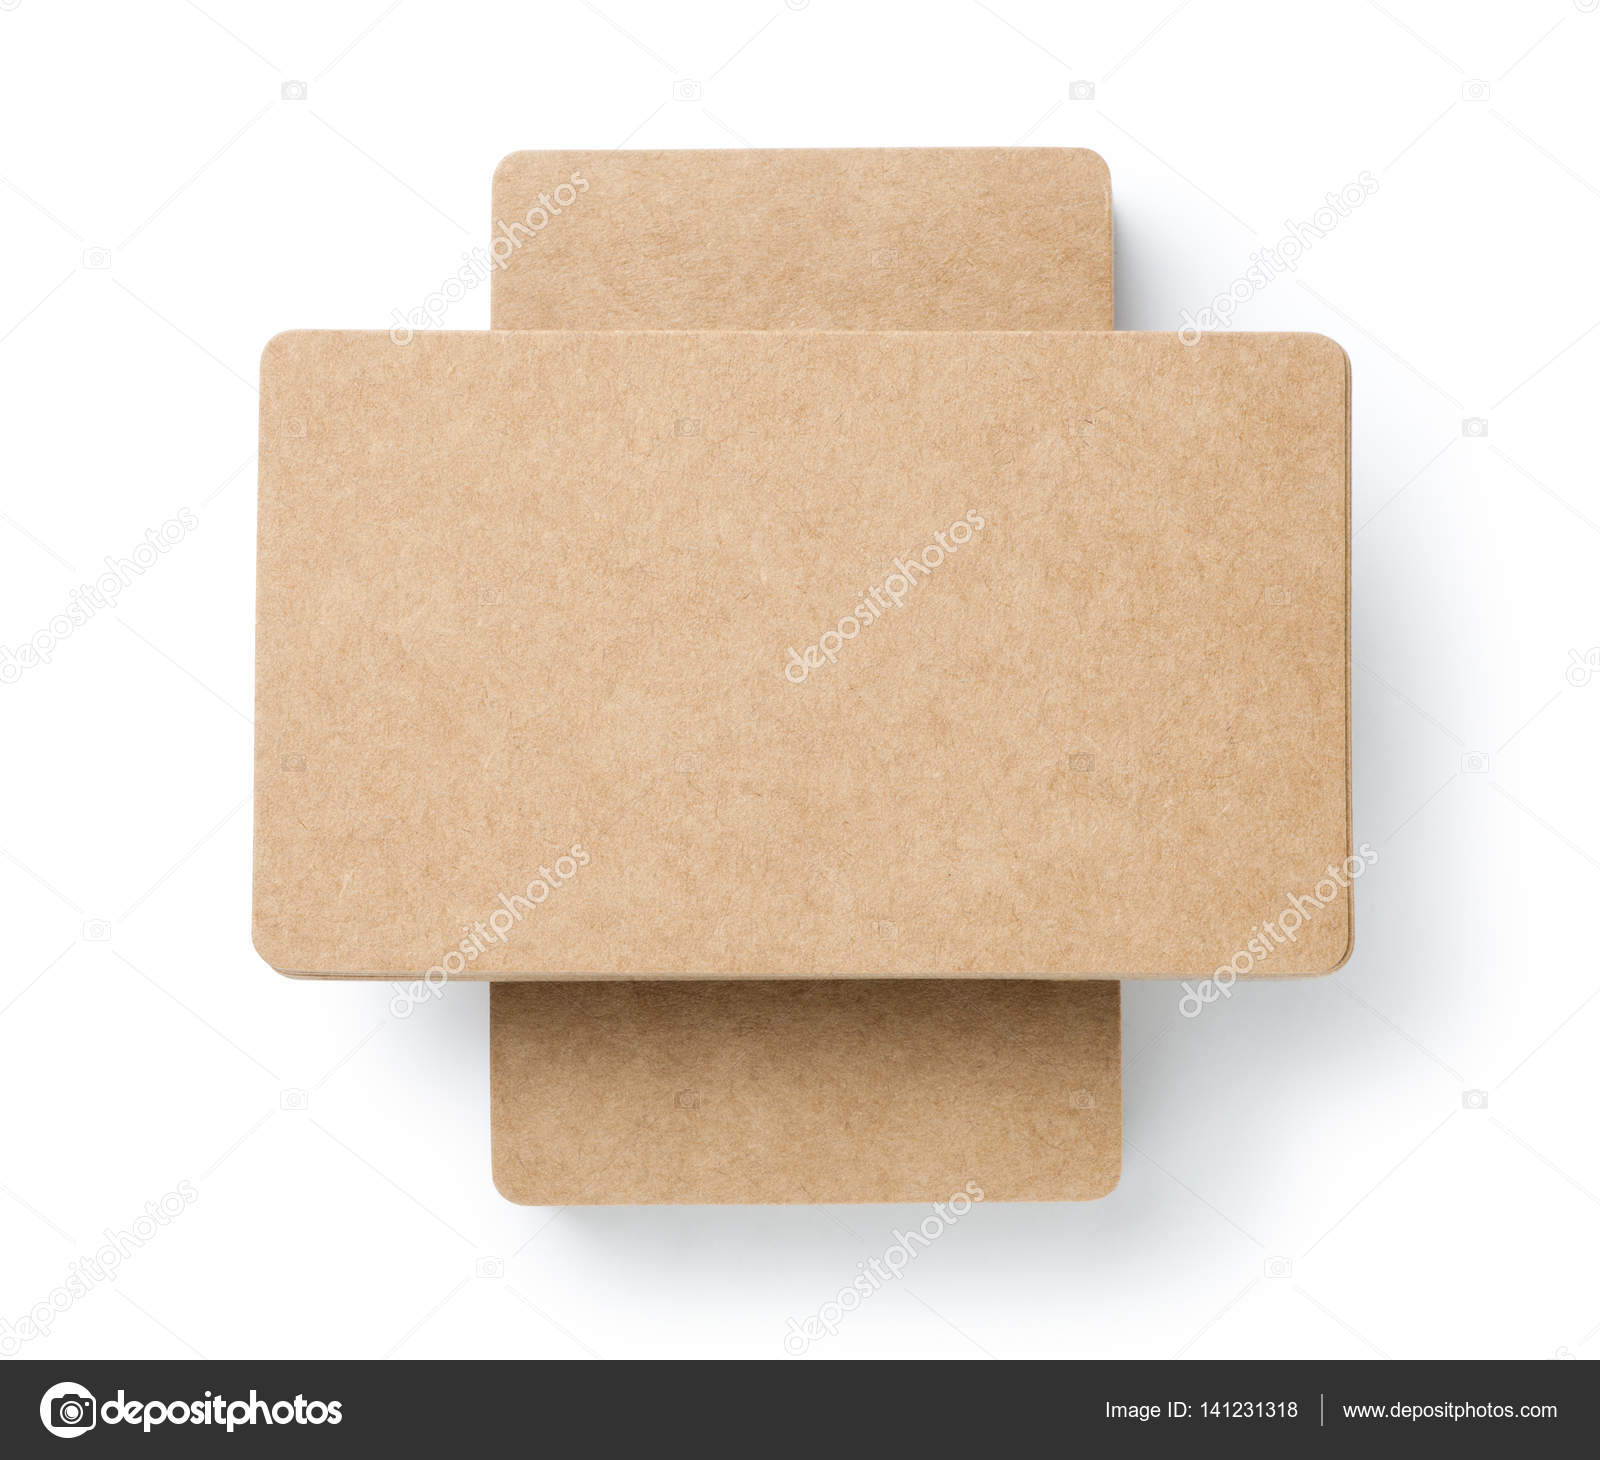 blank brown business cards — Stock Photo © koosen #141231318